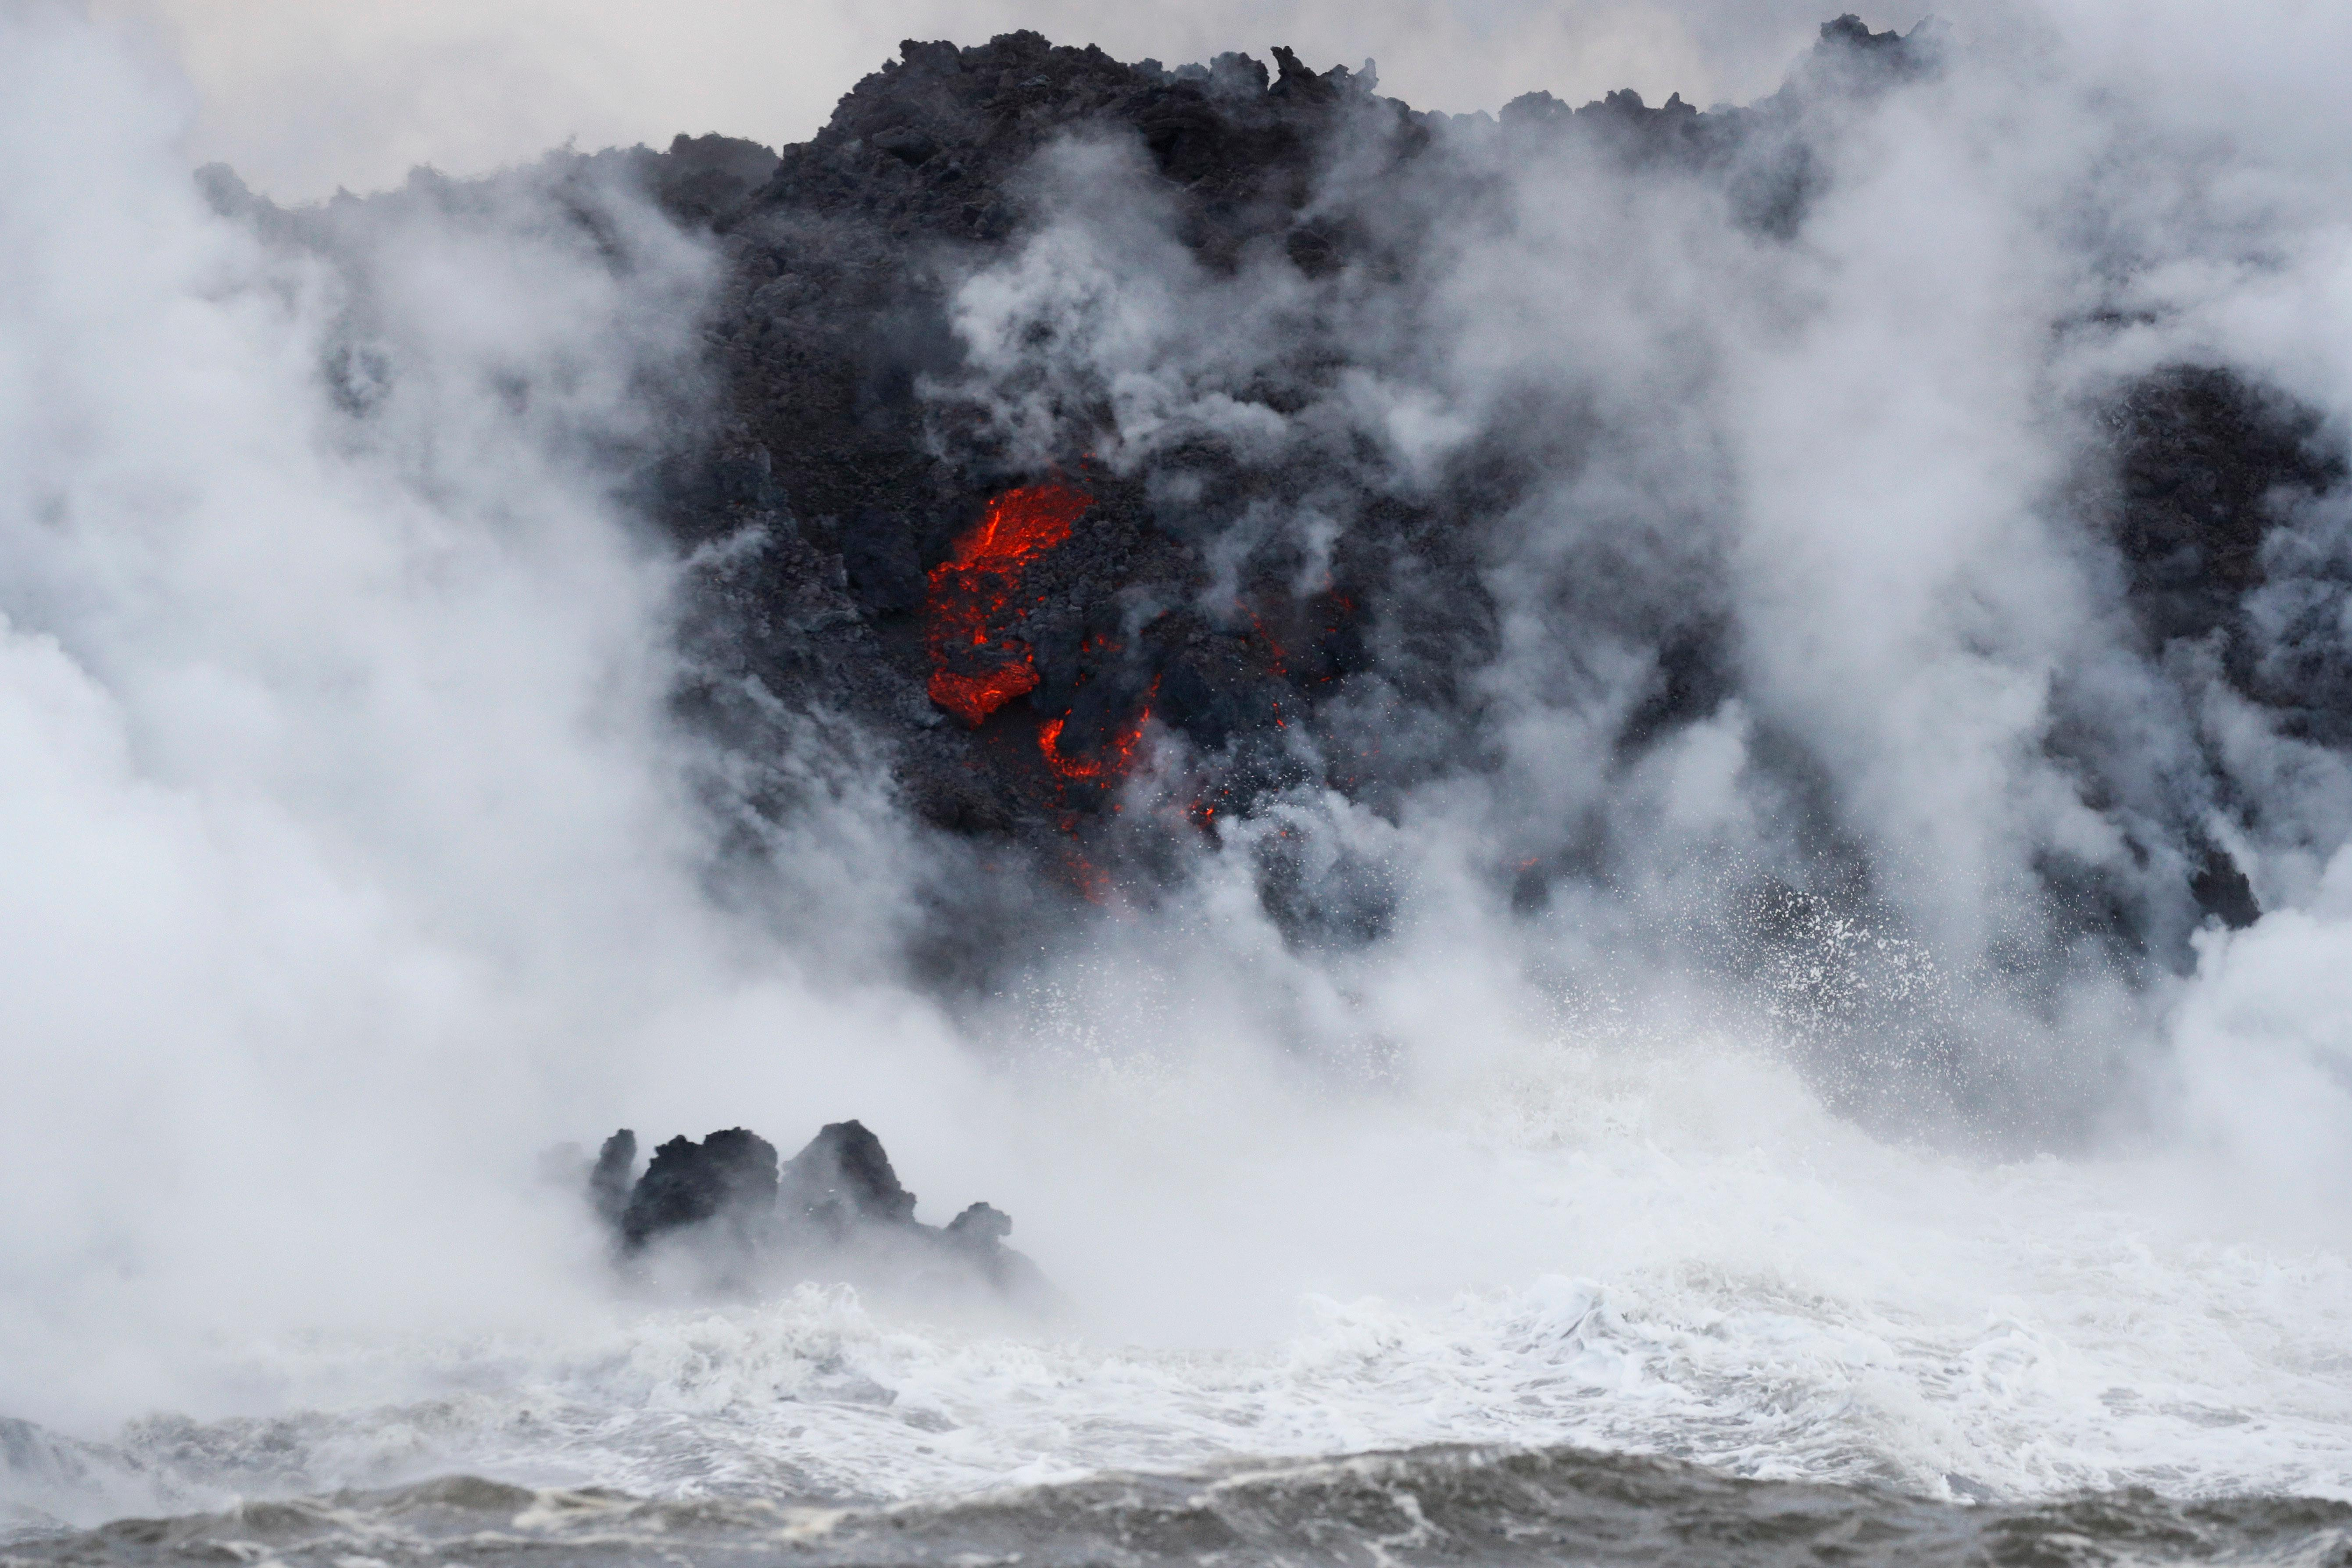 FILE - This May 20, 2018 file photo shows steam rising as lava flows into the ocean near Pahoa, Hawaii. White plumes of acid and extremely fine shards of glass billowed into the sky over Hawaii as molten rock from Kilauea volcano poured into the ocean, creating yet another hazard from an eruption that began more than two weeks ago: A toxic steam cloud. (AP Photo/Jae C. Hong, file)